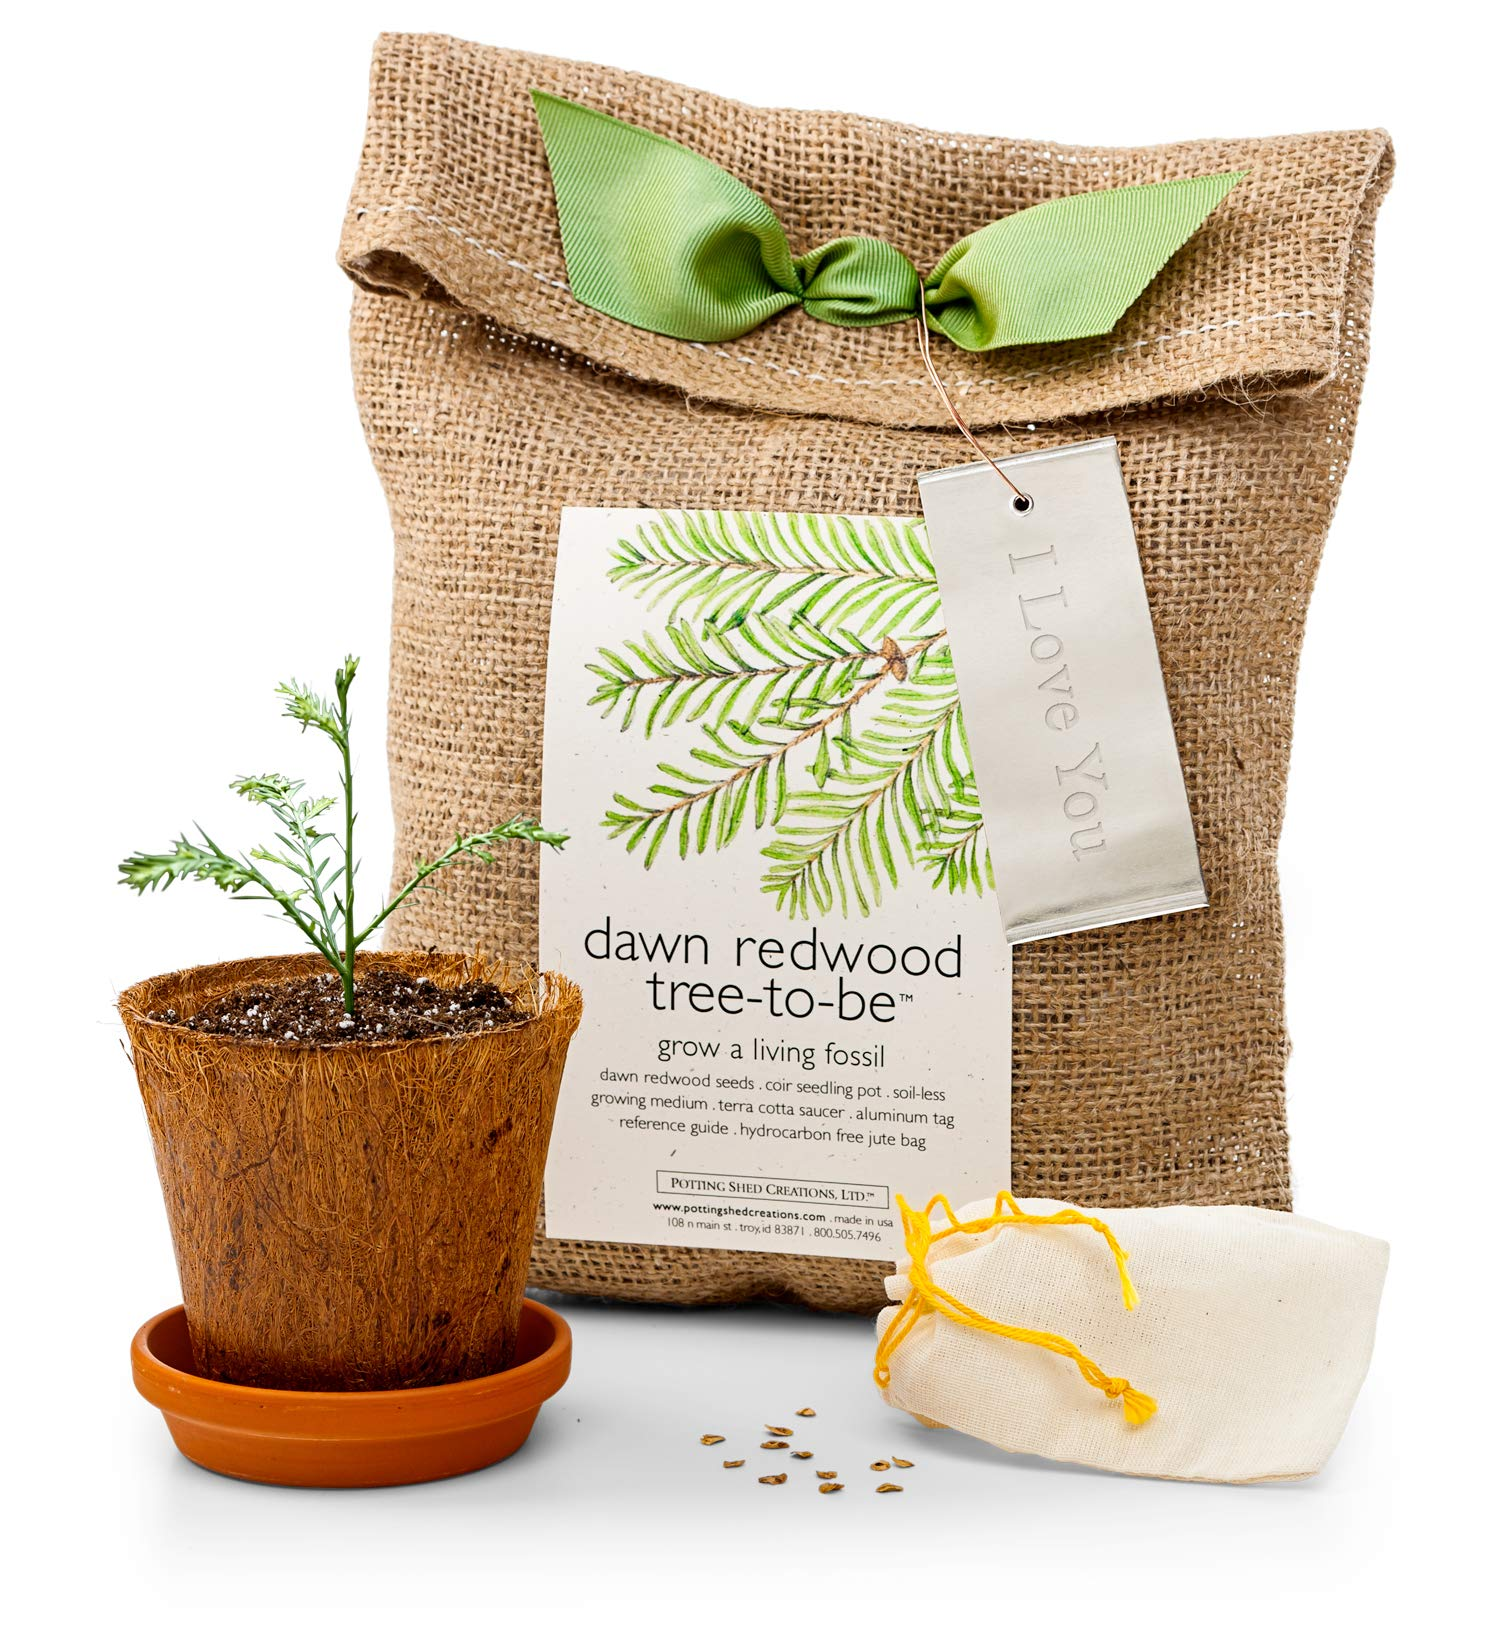 GiftTree Personalized Dawn Redwood Tree-to-Be Growing Kit | Indoor/Outdoor | Grows Up to 2 ft per Year | Great Gift for Graduation, Birthday, Kids and Teens by GiftTree